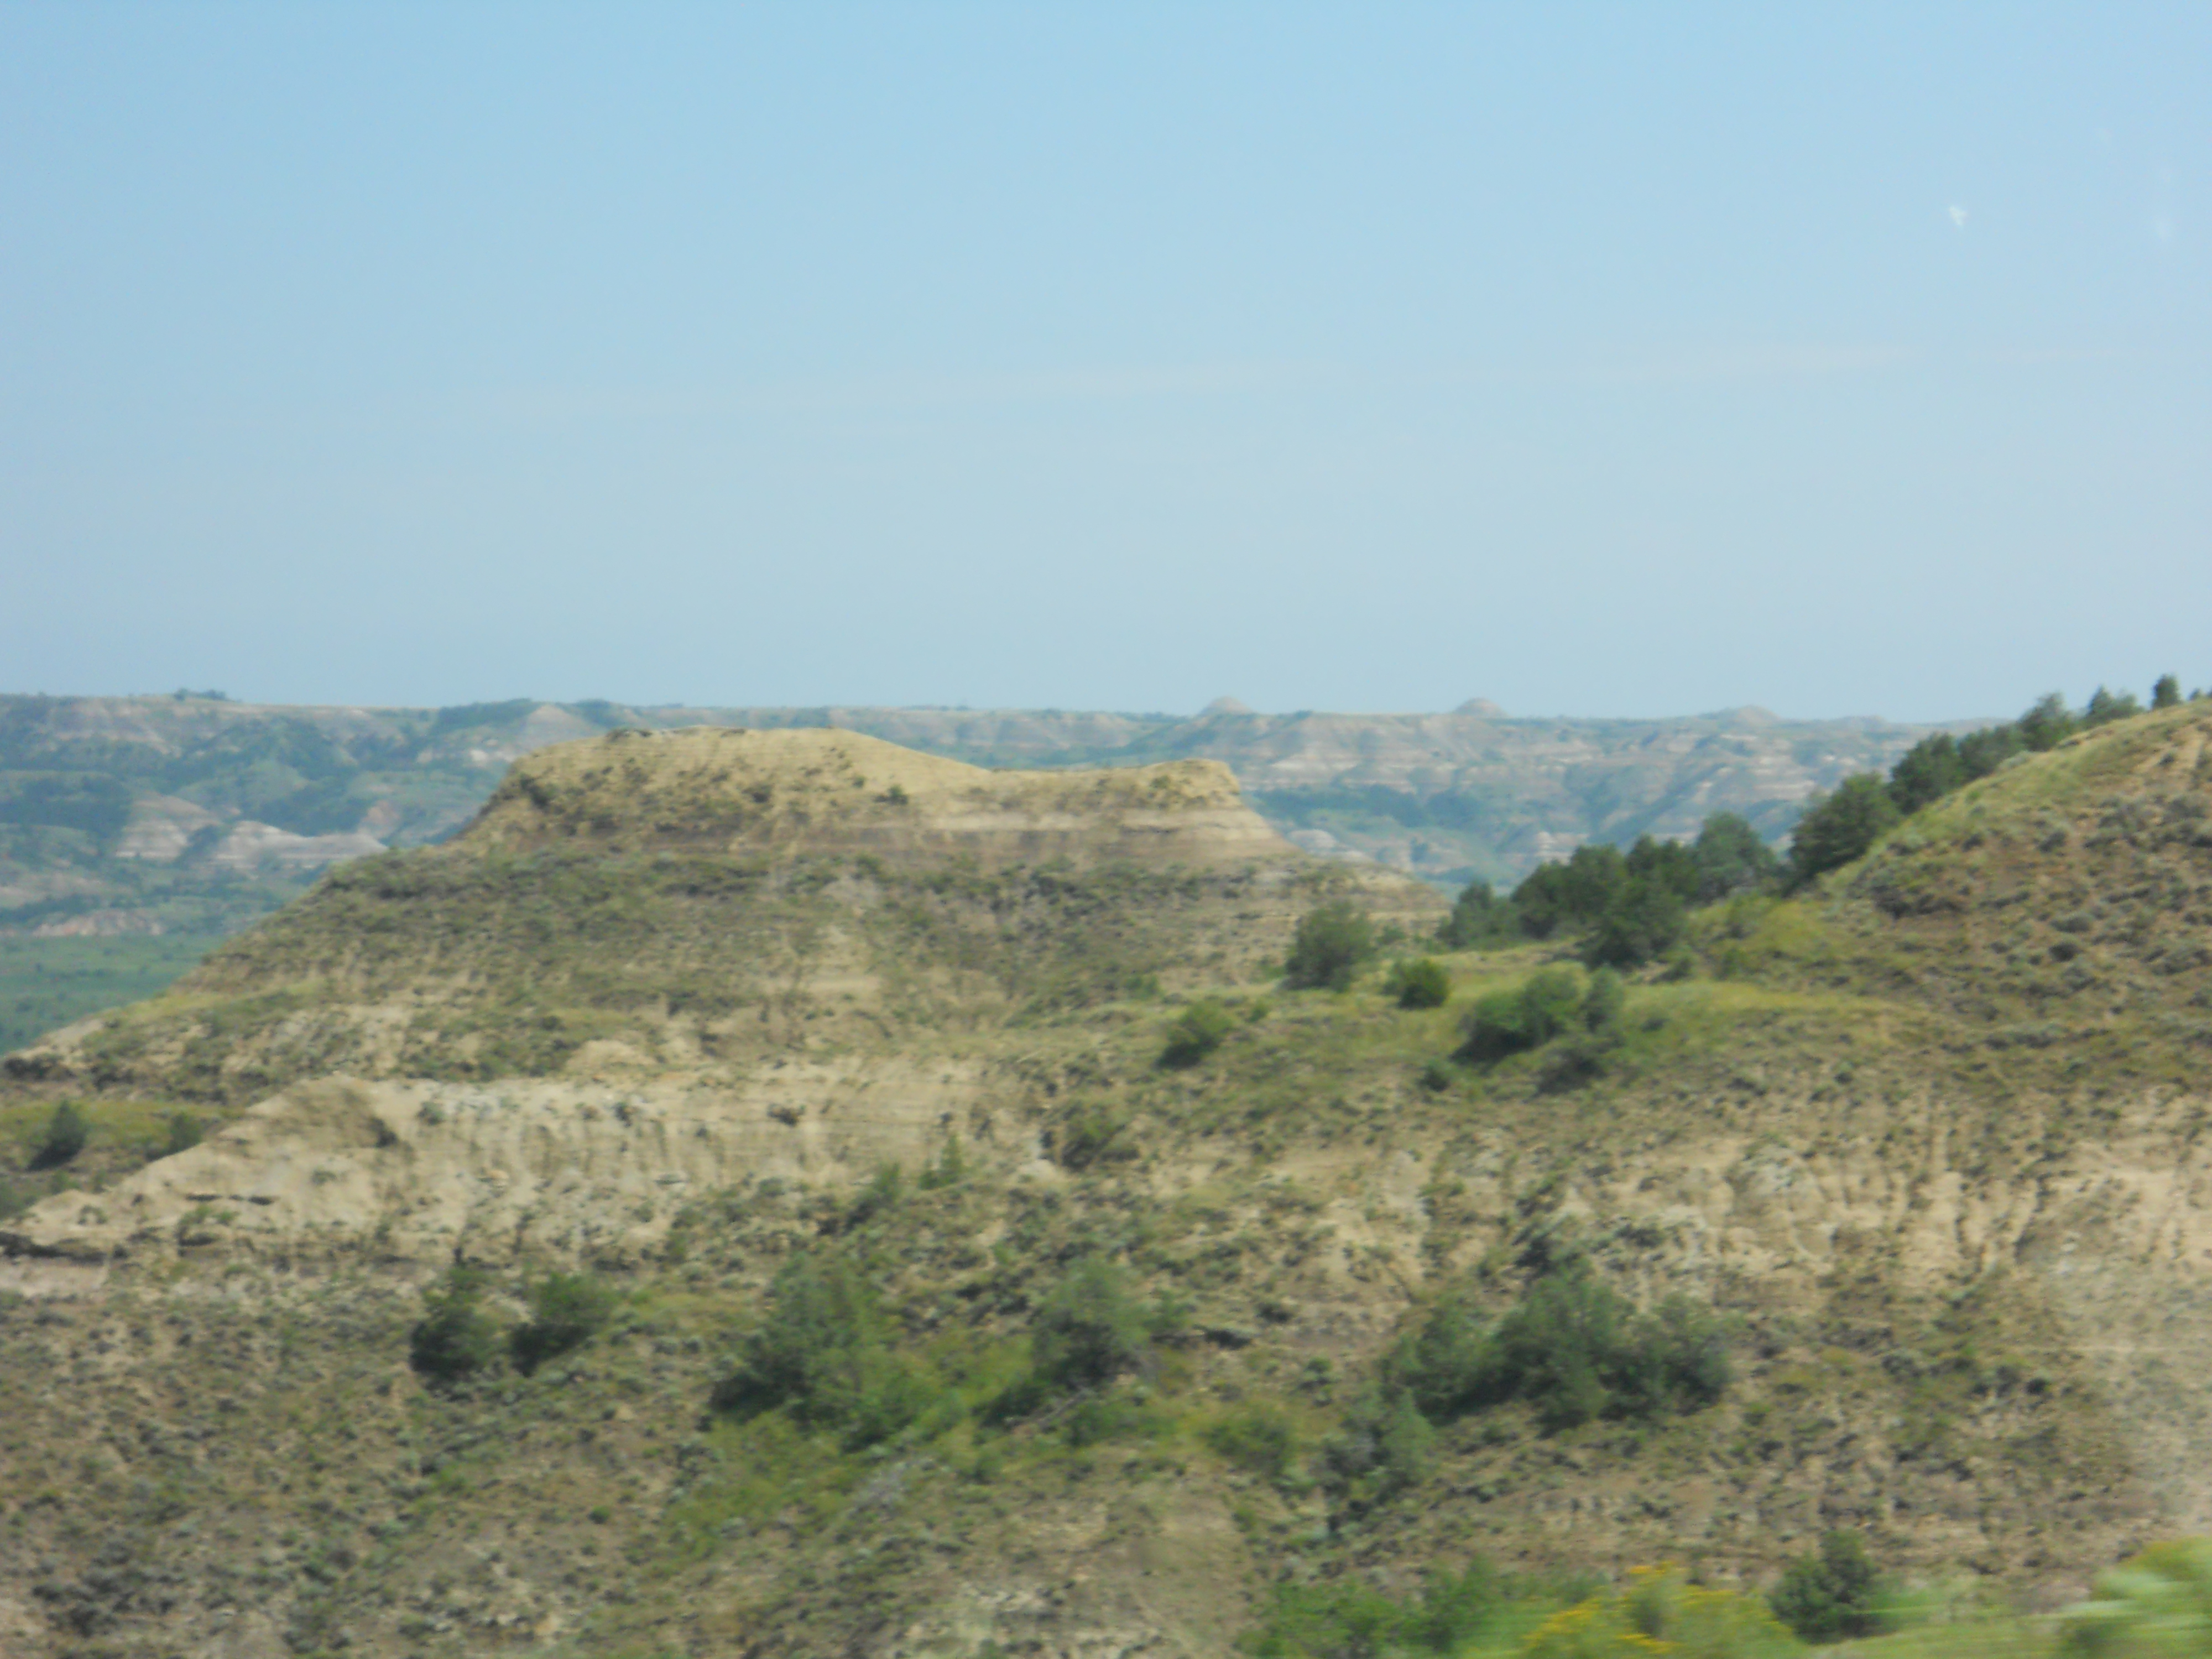 flat-topped rock outcroppings in North Dakota